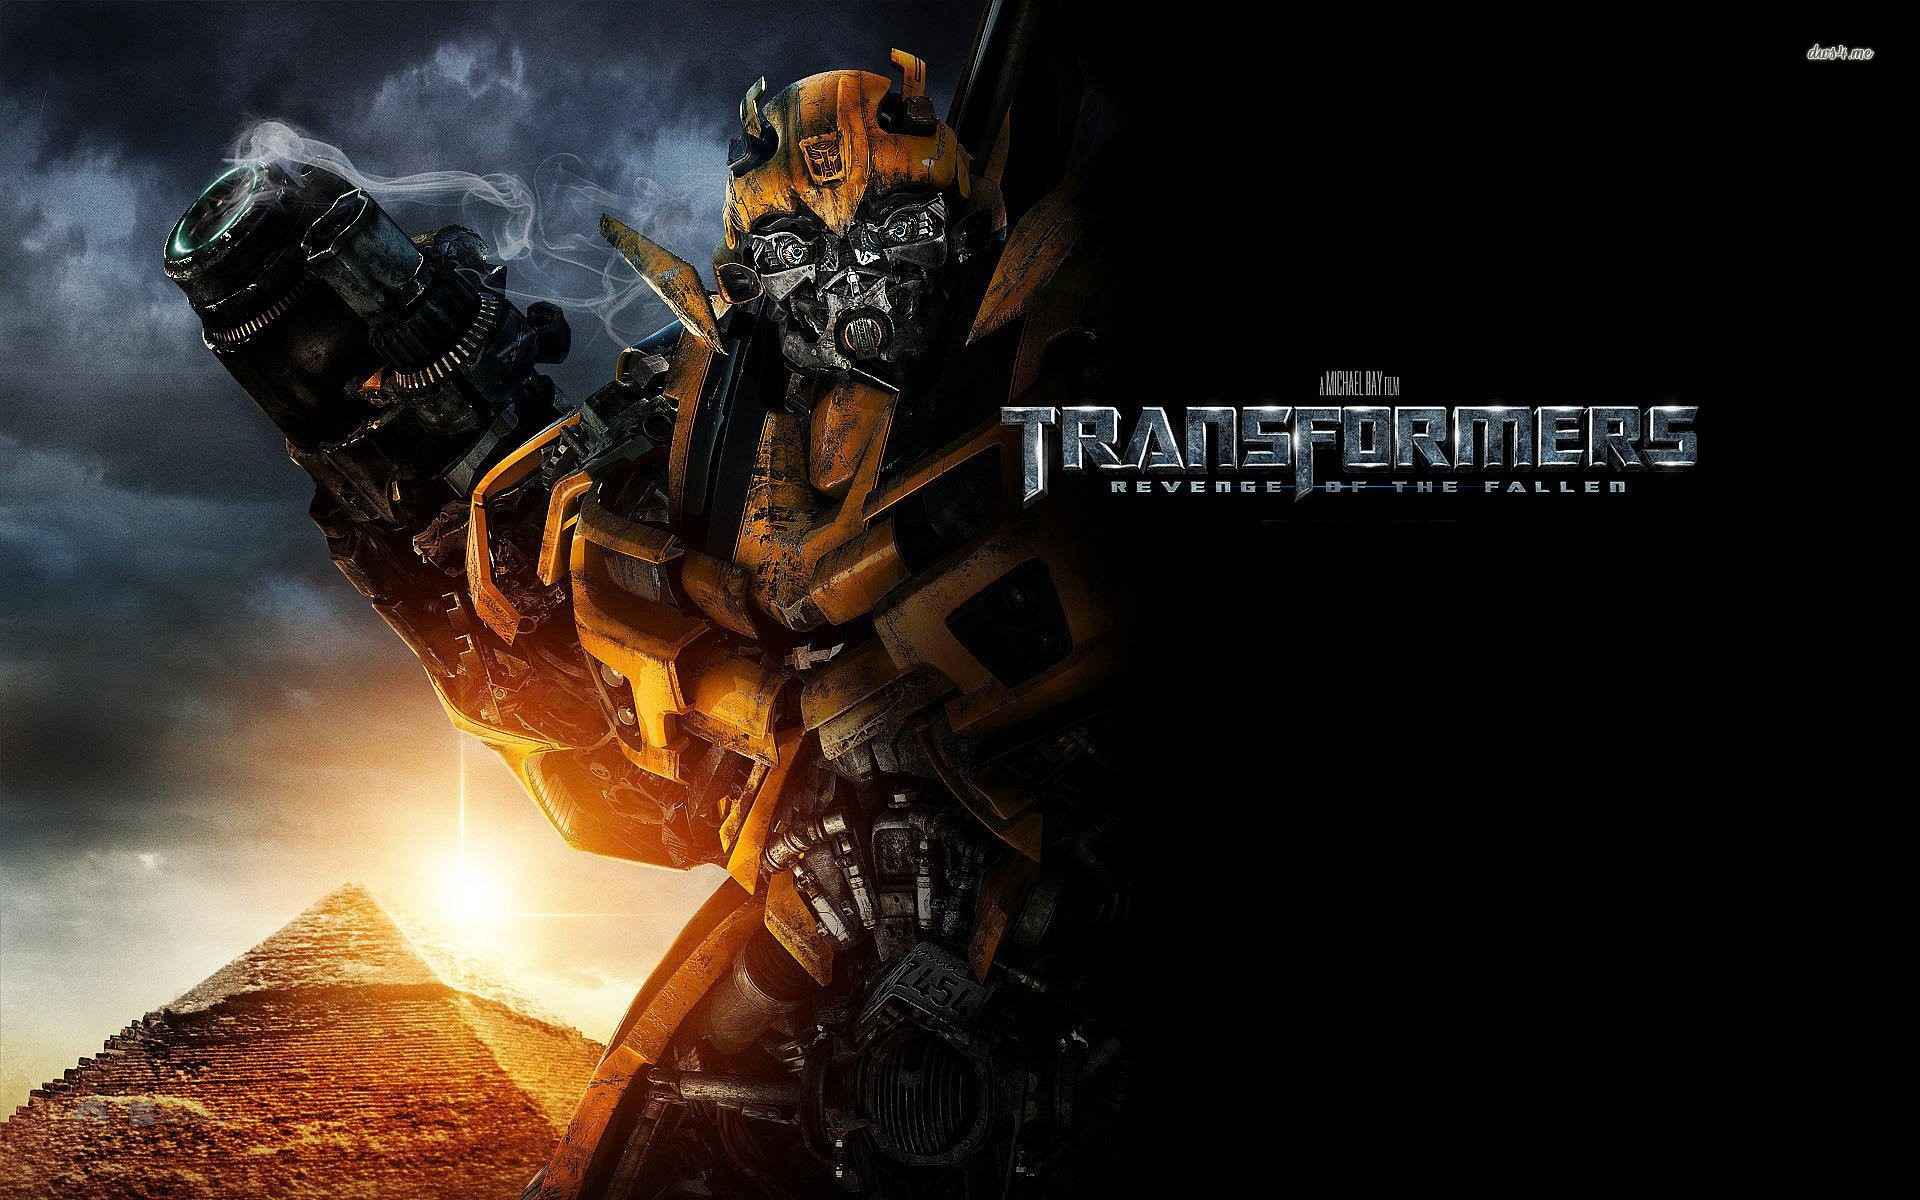 Res: 1920x1200, Bumblebee | HD Quality Wallpapers, Wallpapers